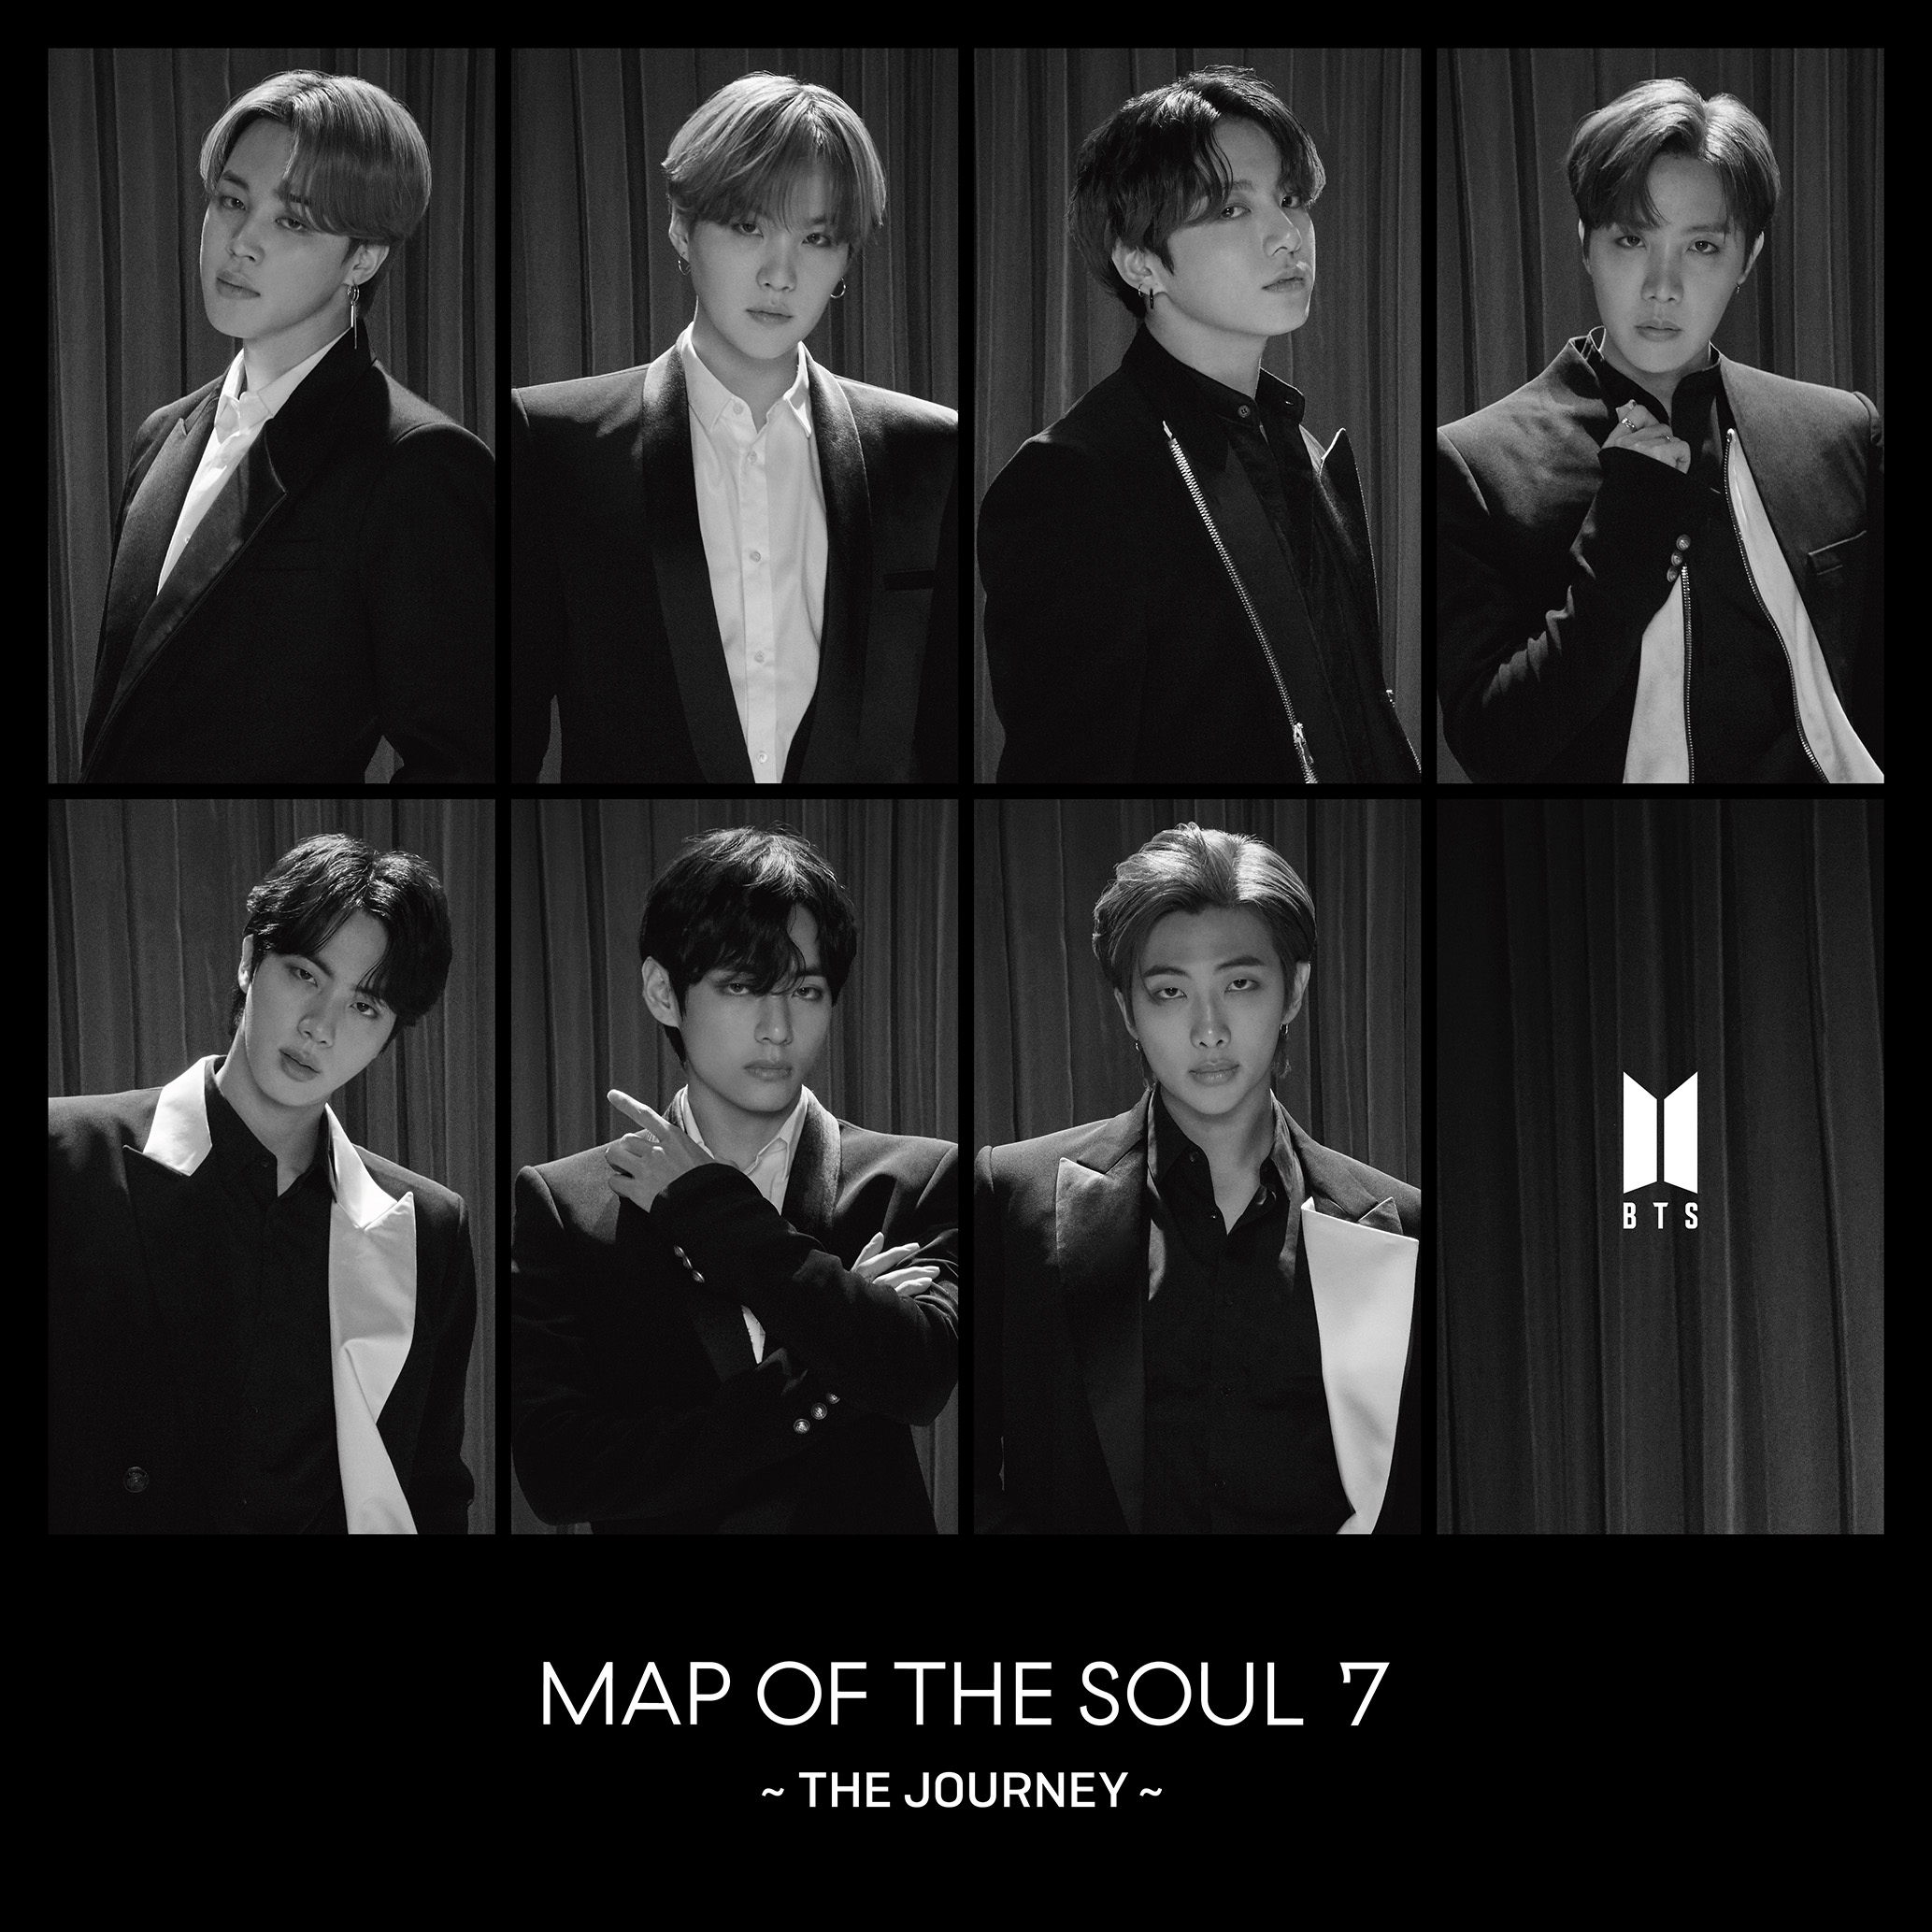 Map.of.the.Soul%3A.7.~The.Journey~.full.223236